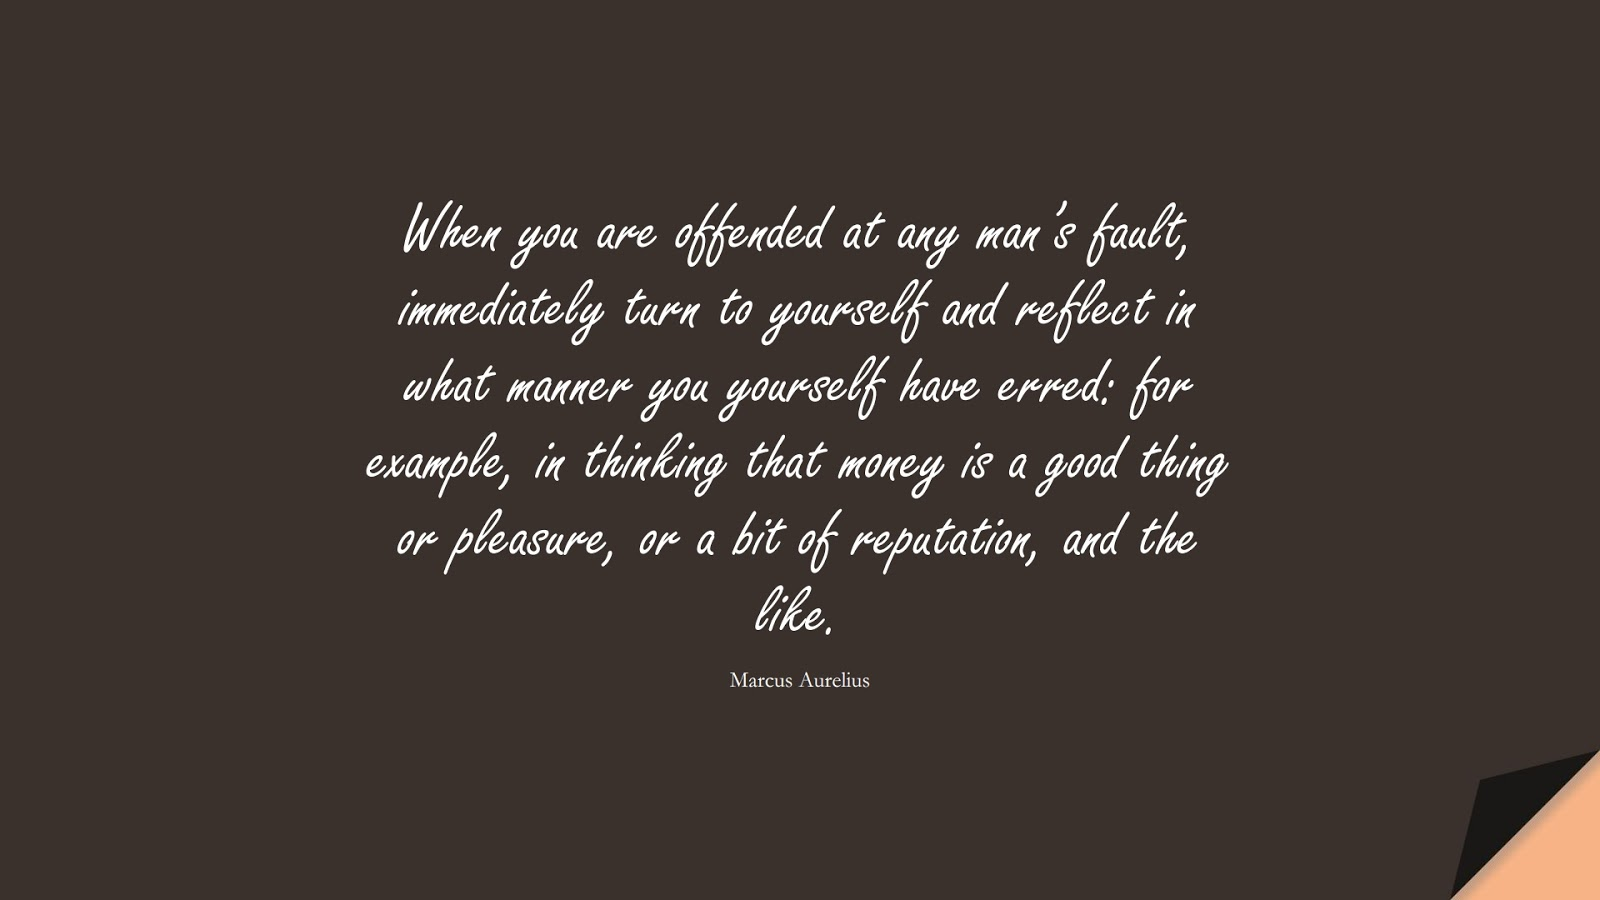 When you are offended at any man's fault, immediately turn to yourself and reflect in what manner you yourself have erred: for example, in thinking that money is a good thing or pleasure, or a bit of reputation, and the like. (Marcus Aurelius);  #MarcusAureliusQuotes